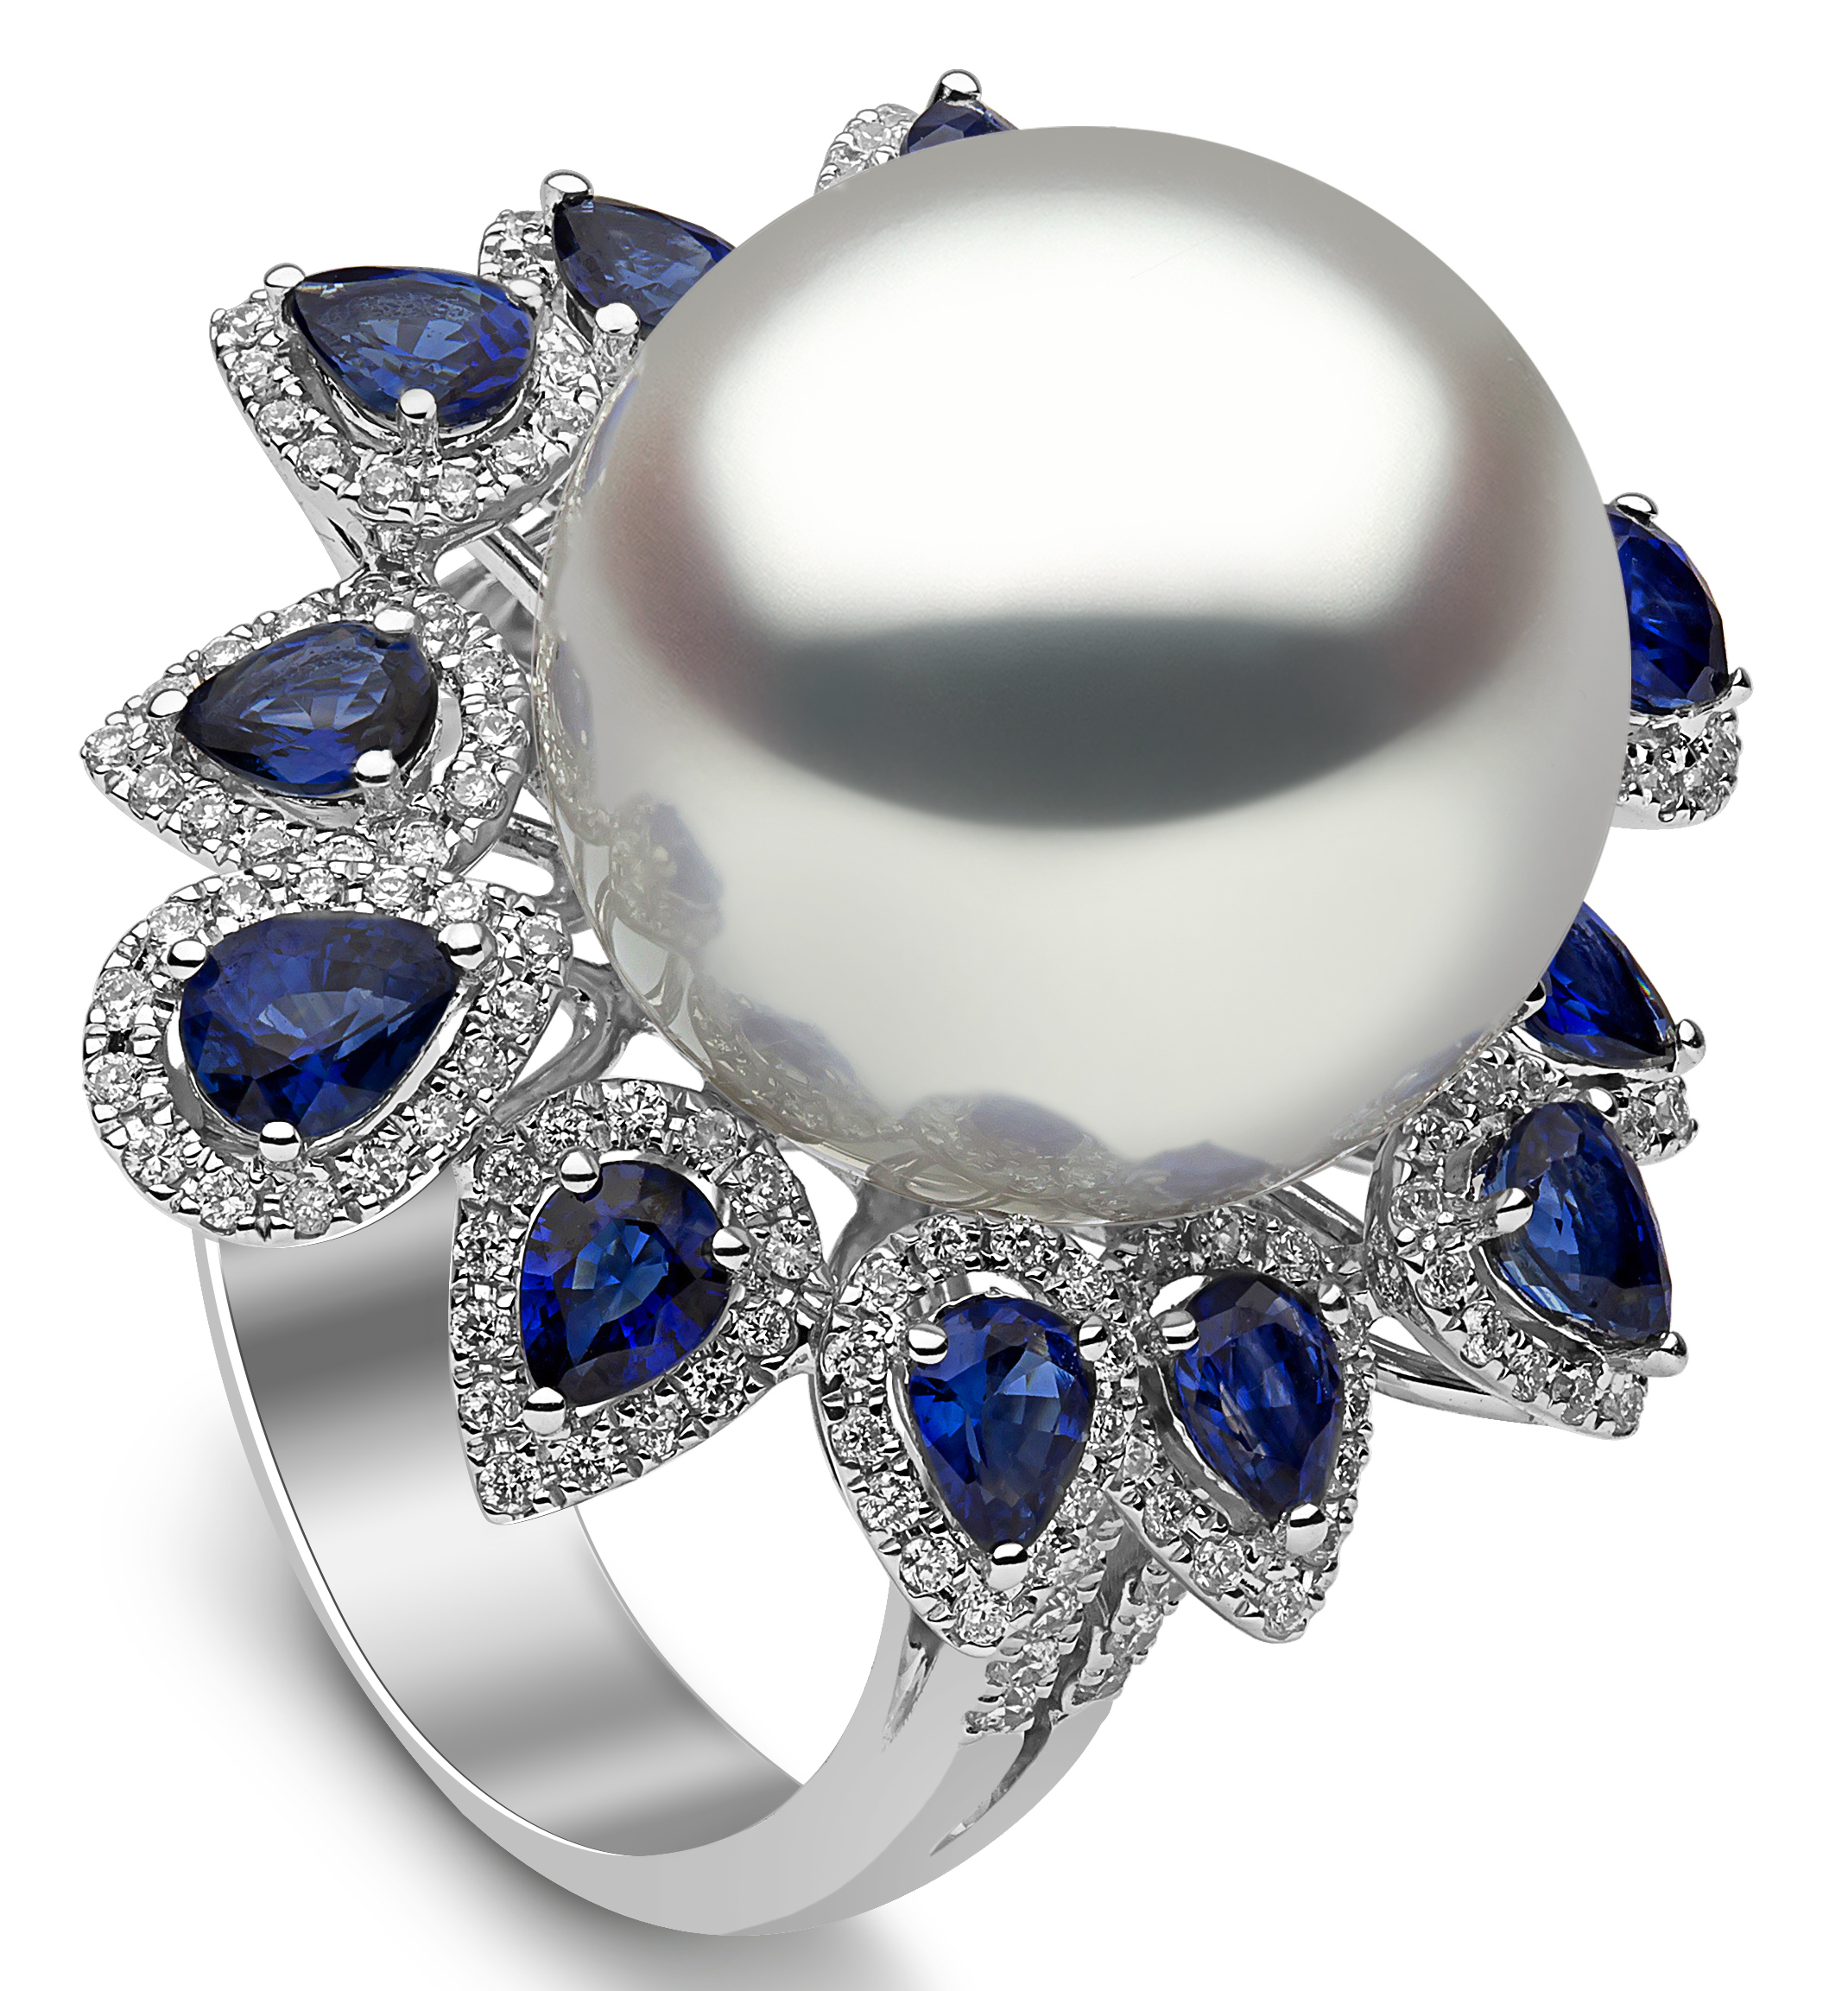 Yoko London pearl and sapphire ring | JCK On Your Market